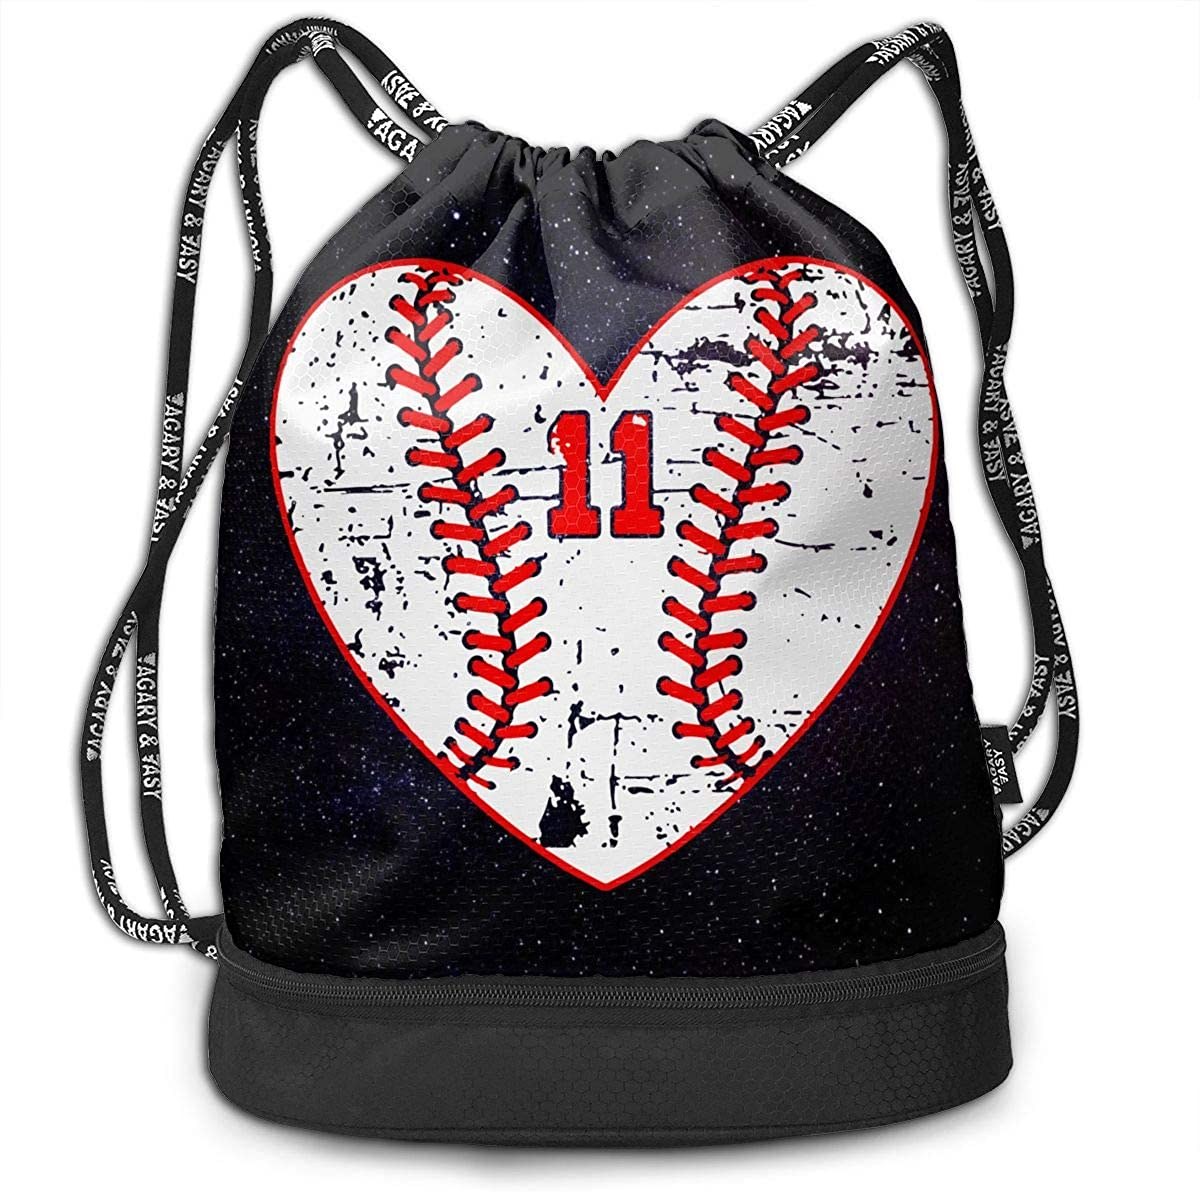 SG0HGO Drawstring Bag Baseball Distressed Heart Number 11 Men /& Women Yoga Dance Travel Shoulder Bags